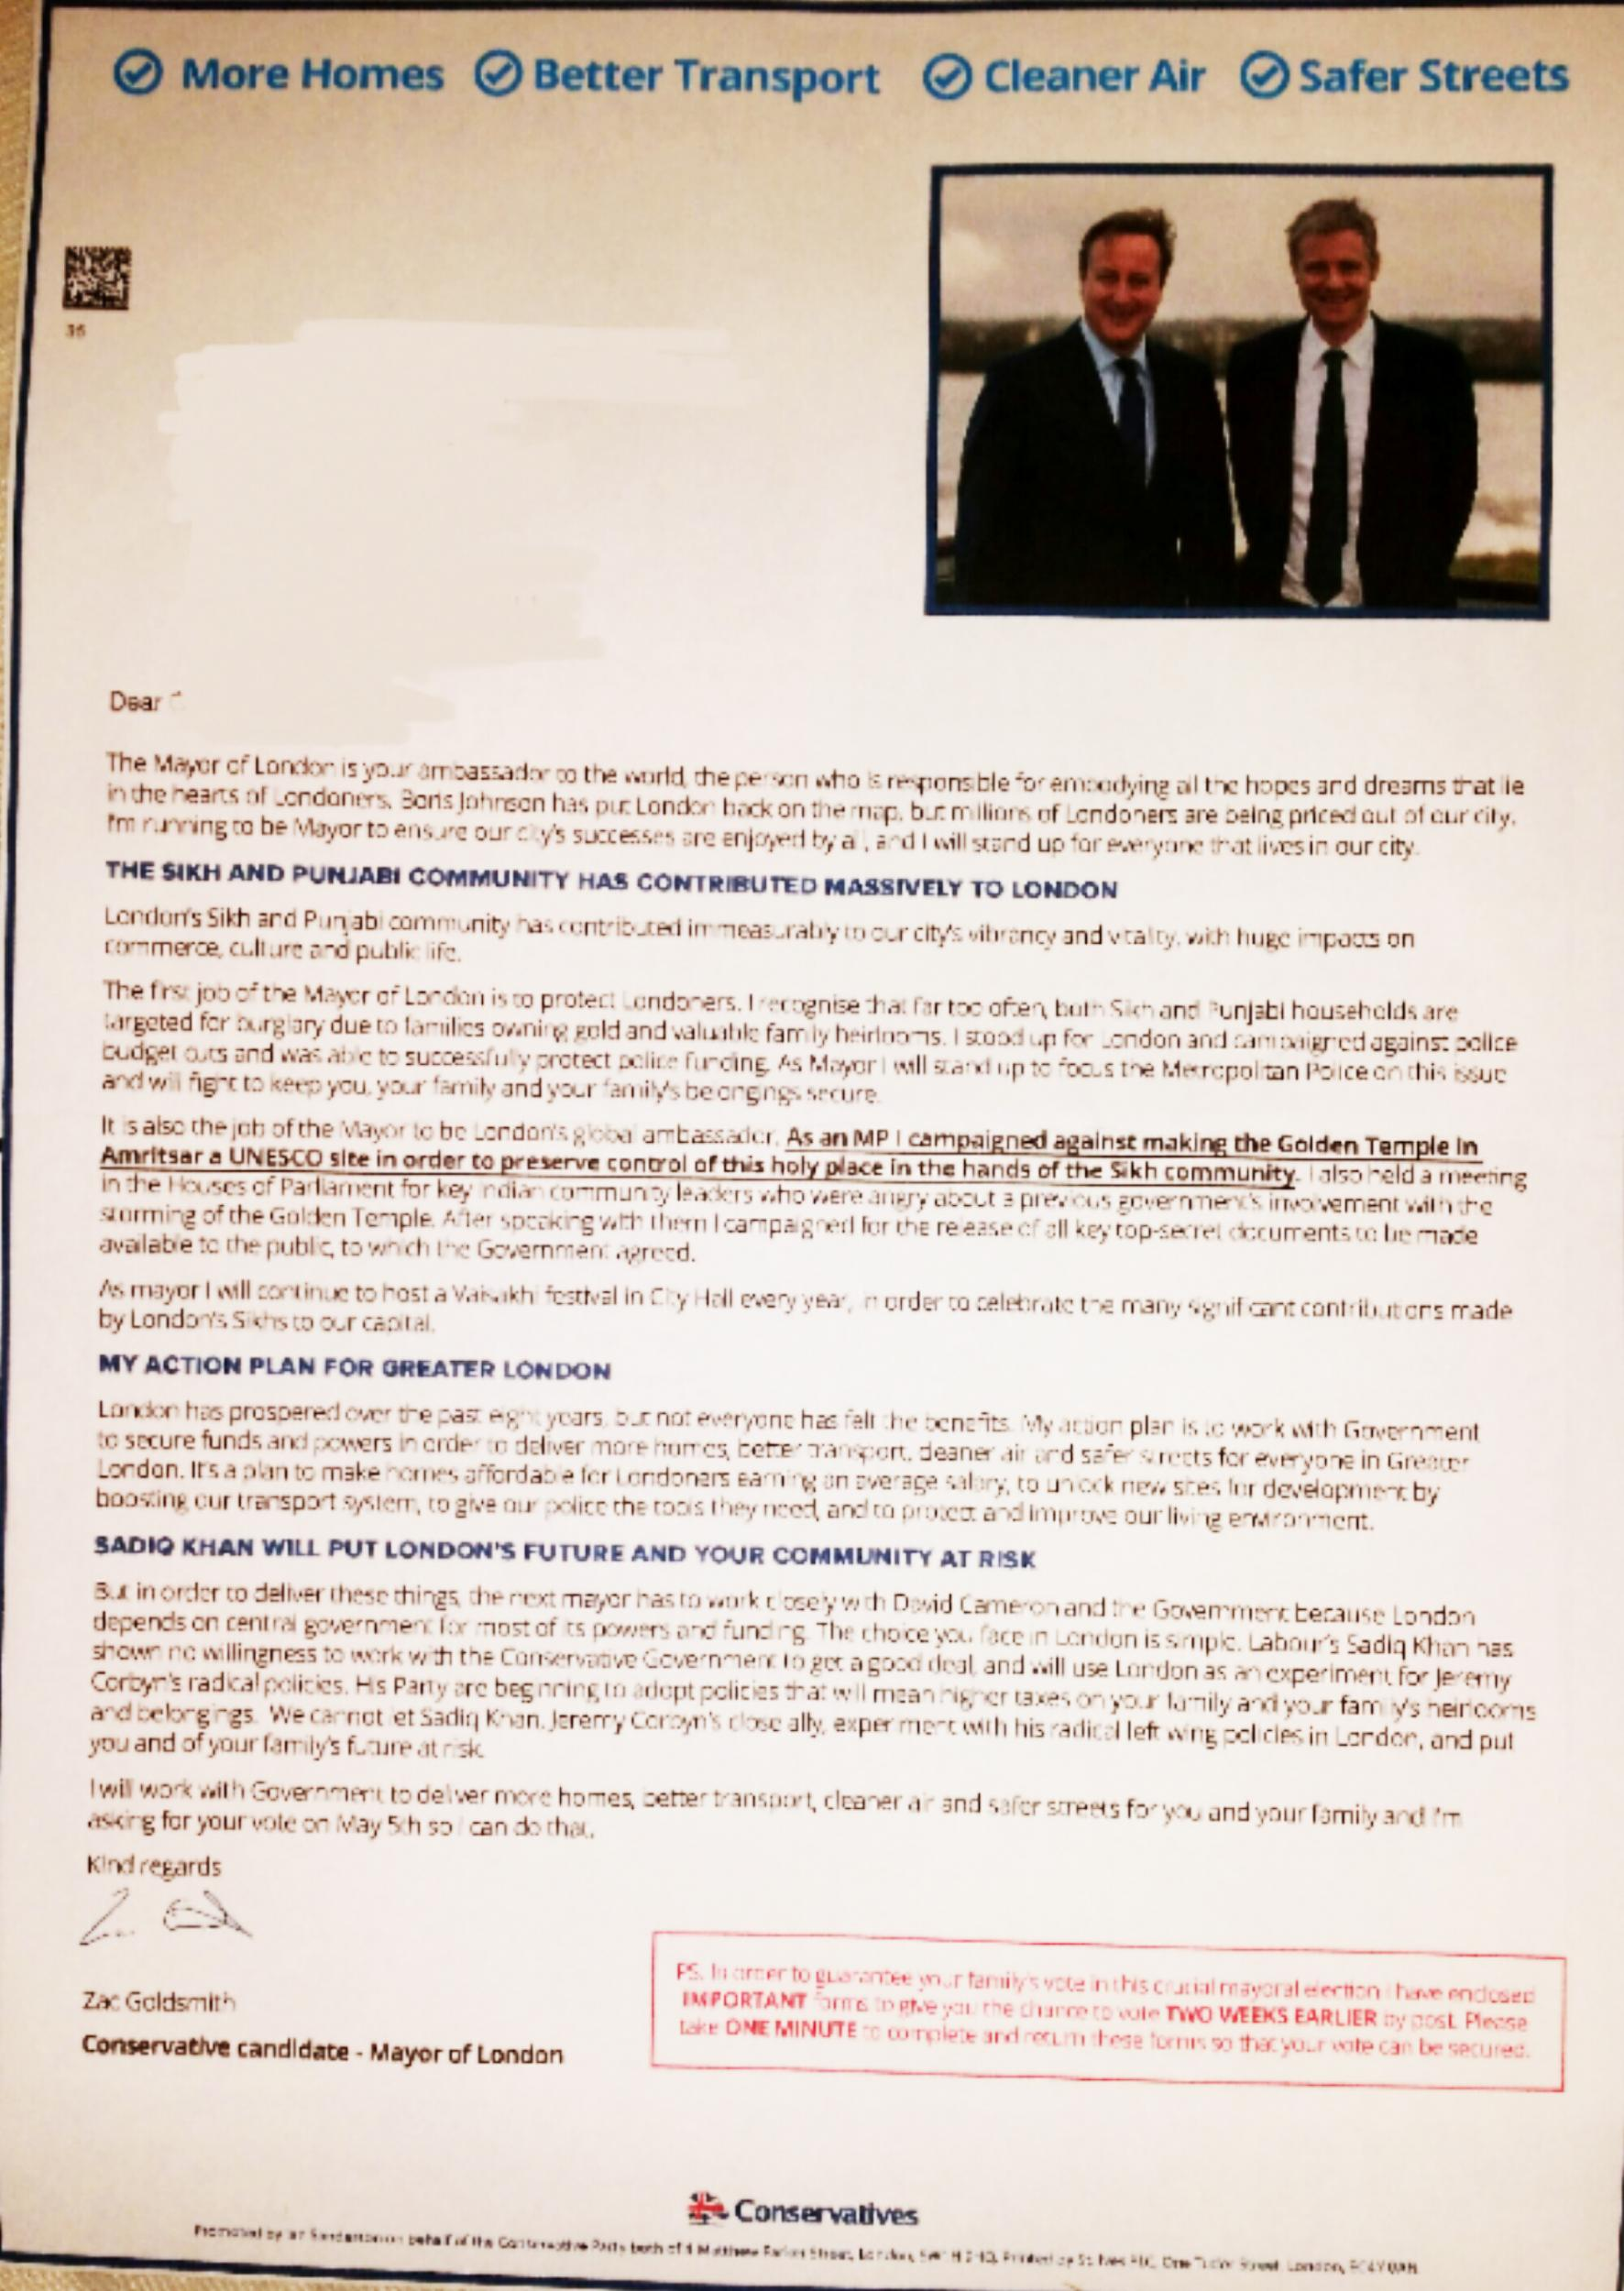 The racial profiling in Zac Goldsmith's mayoral leaflets